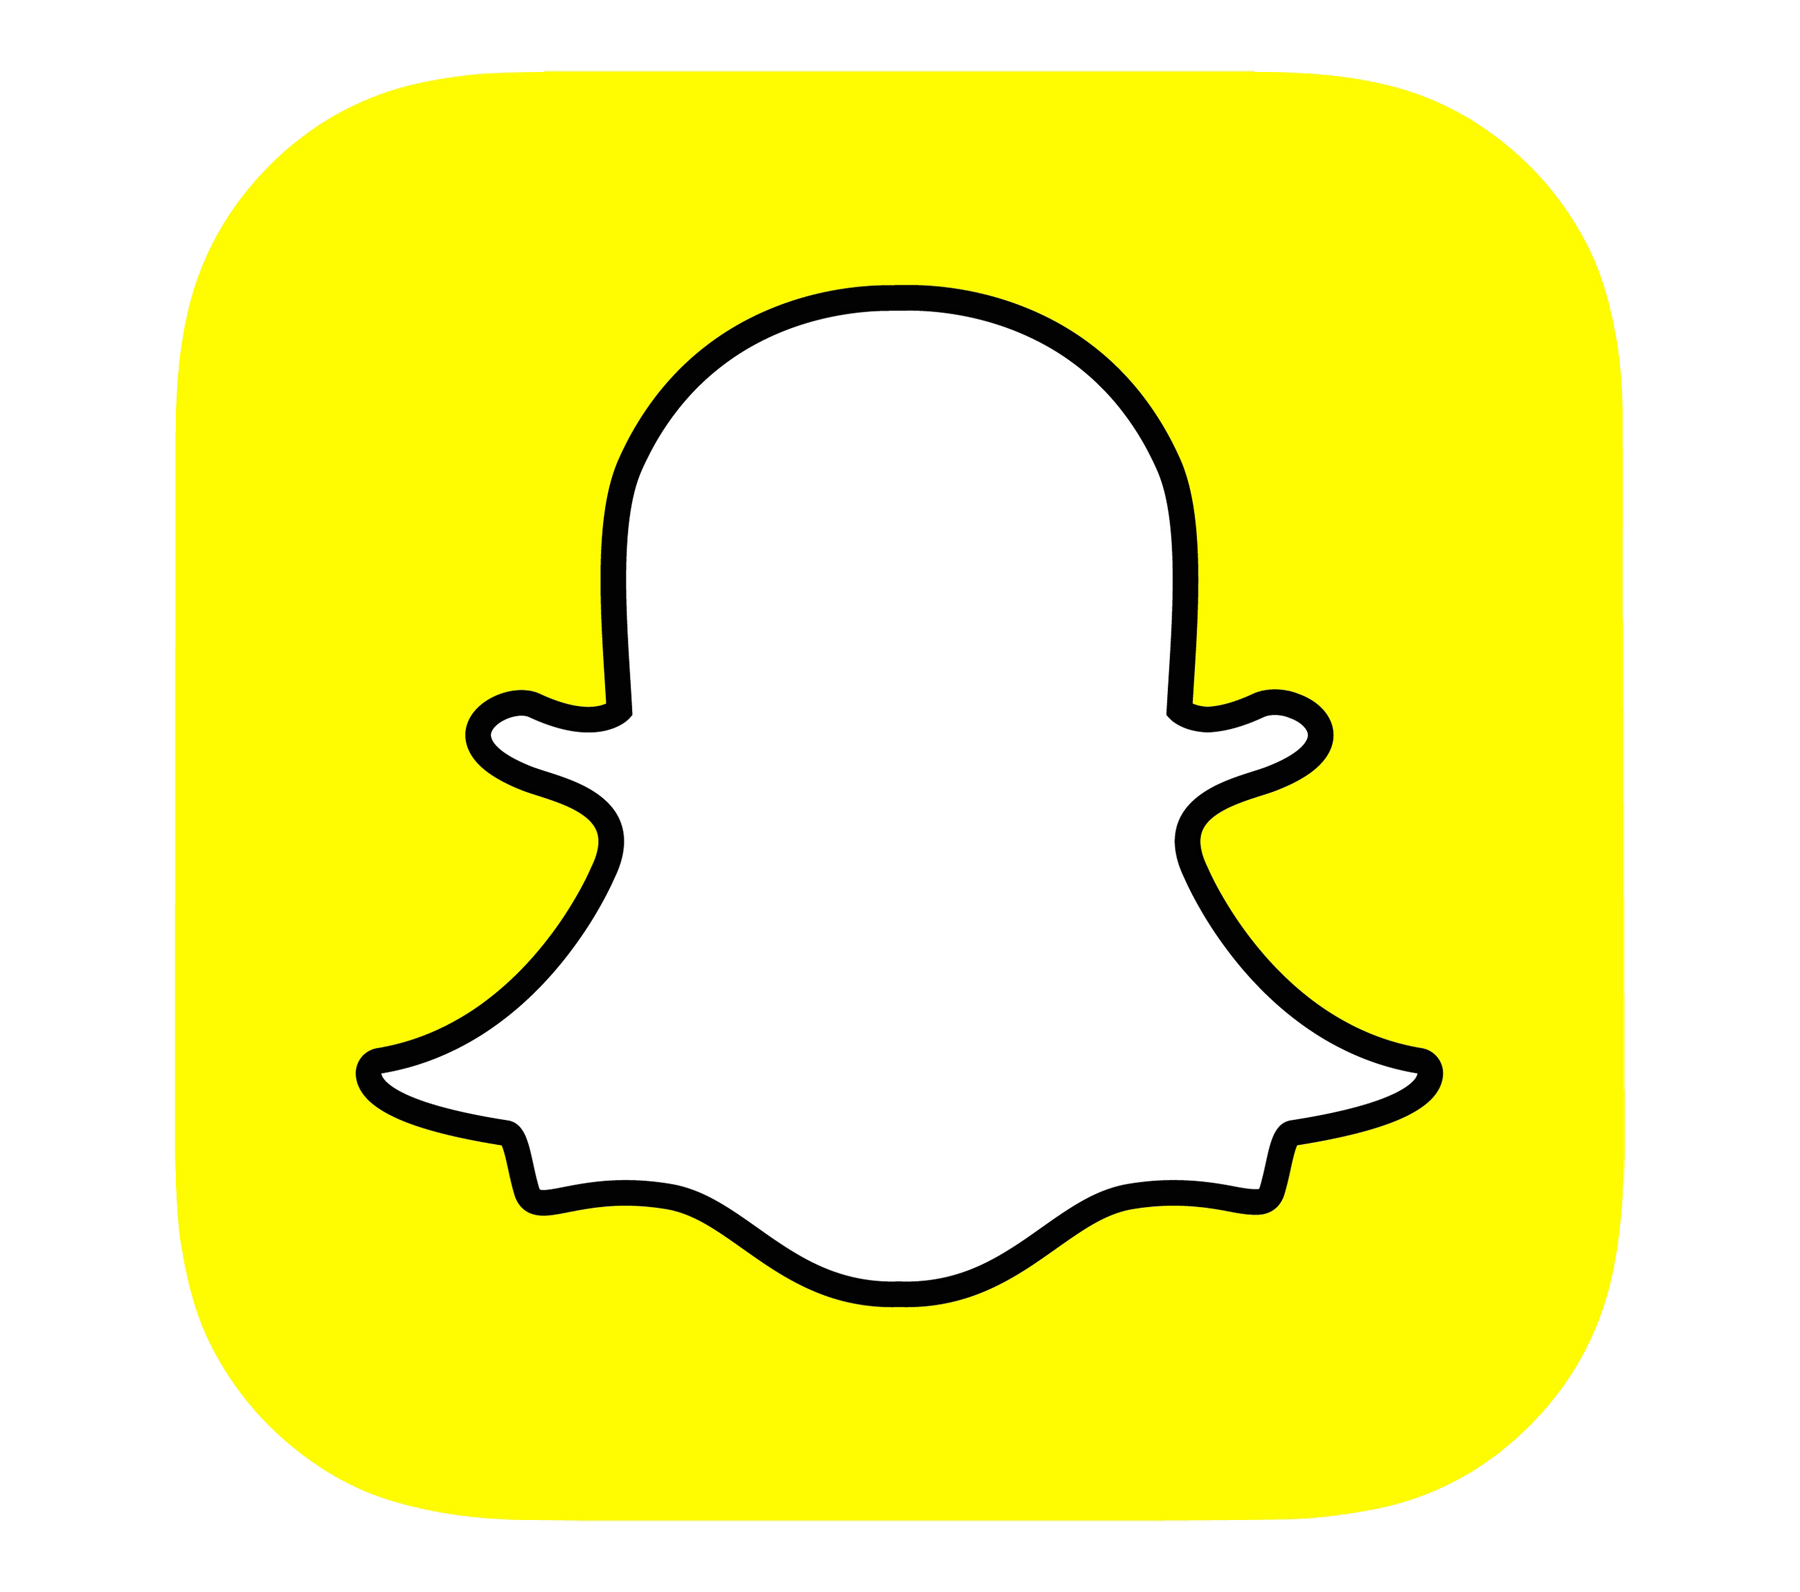 Meaning Snapchat logo and symbol.